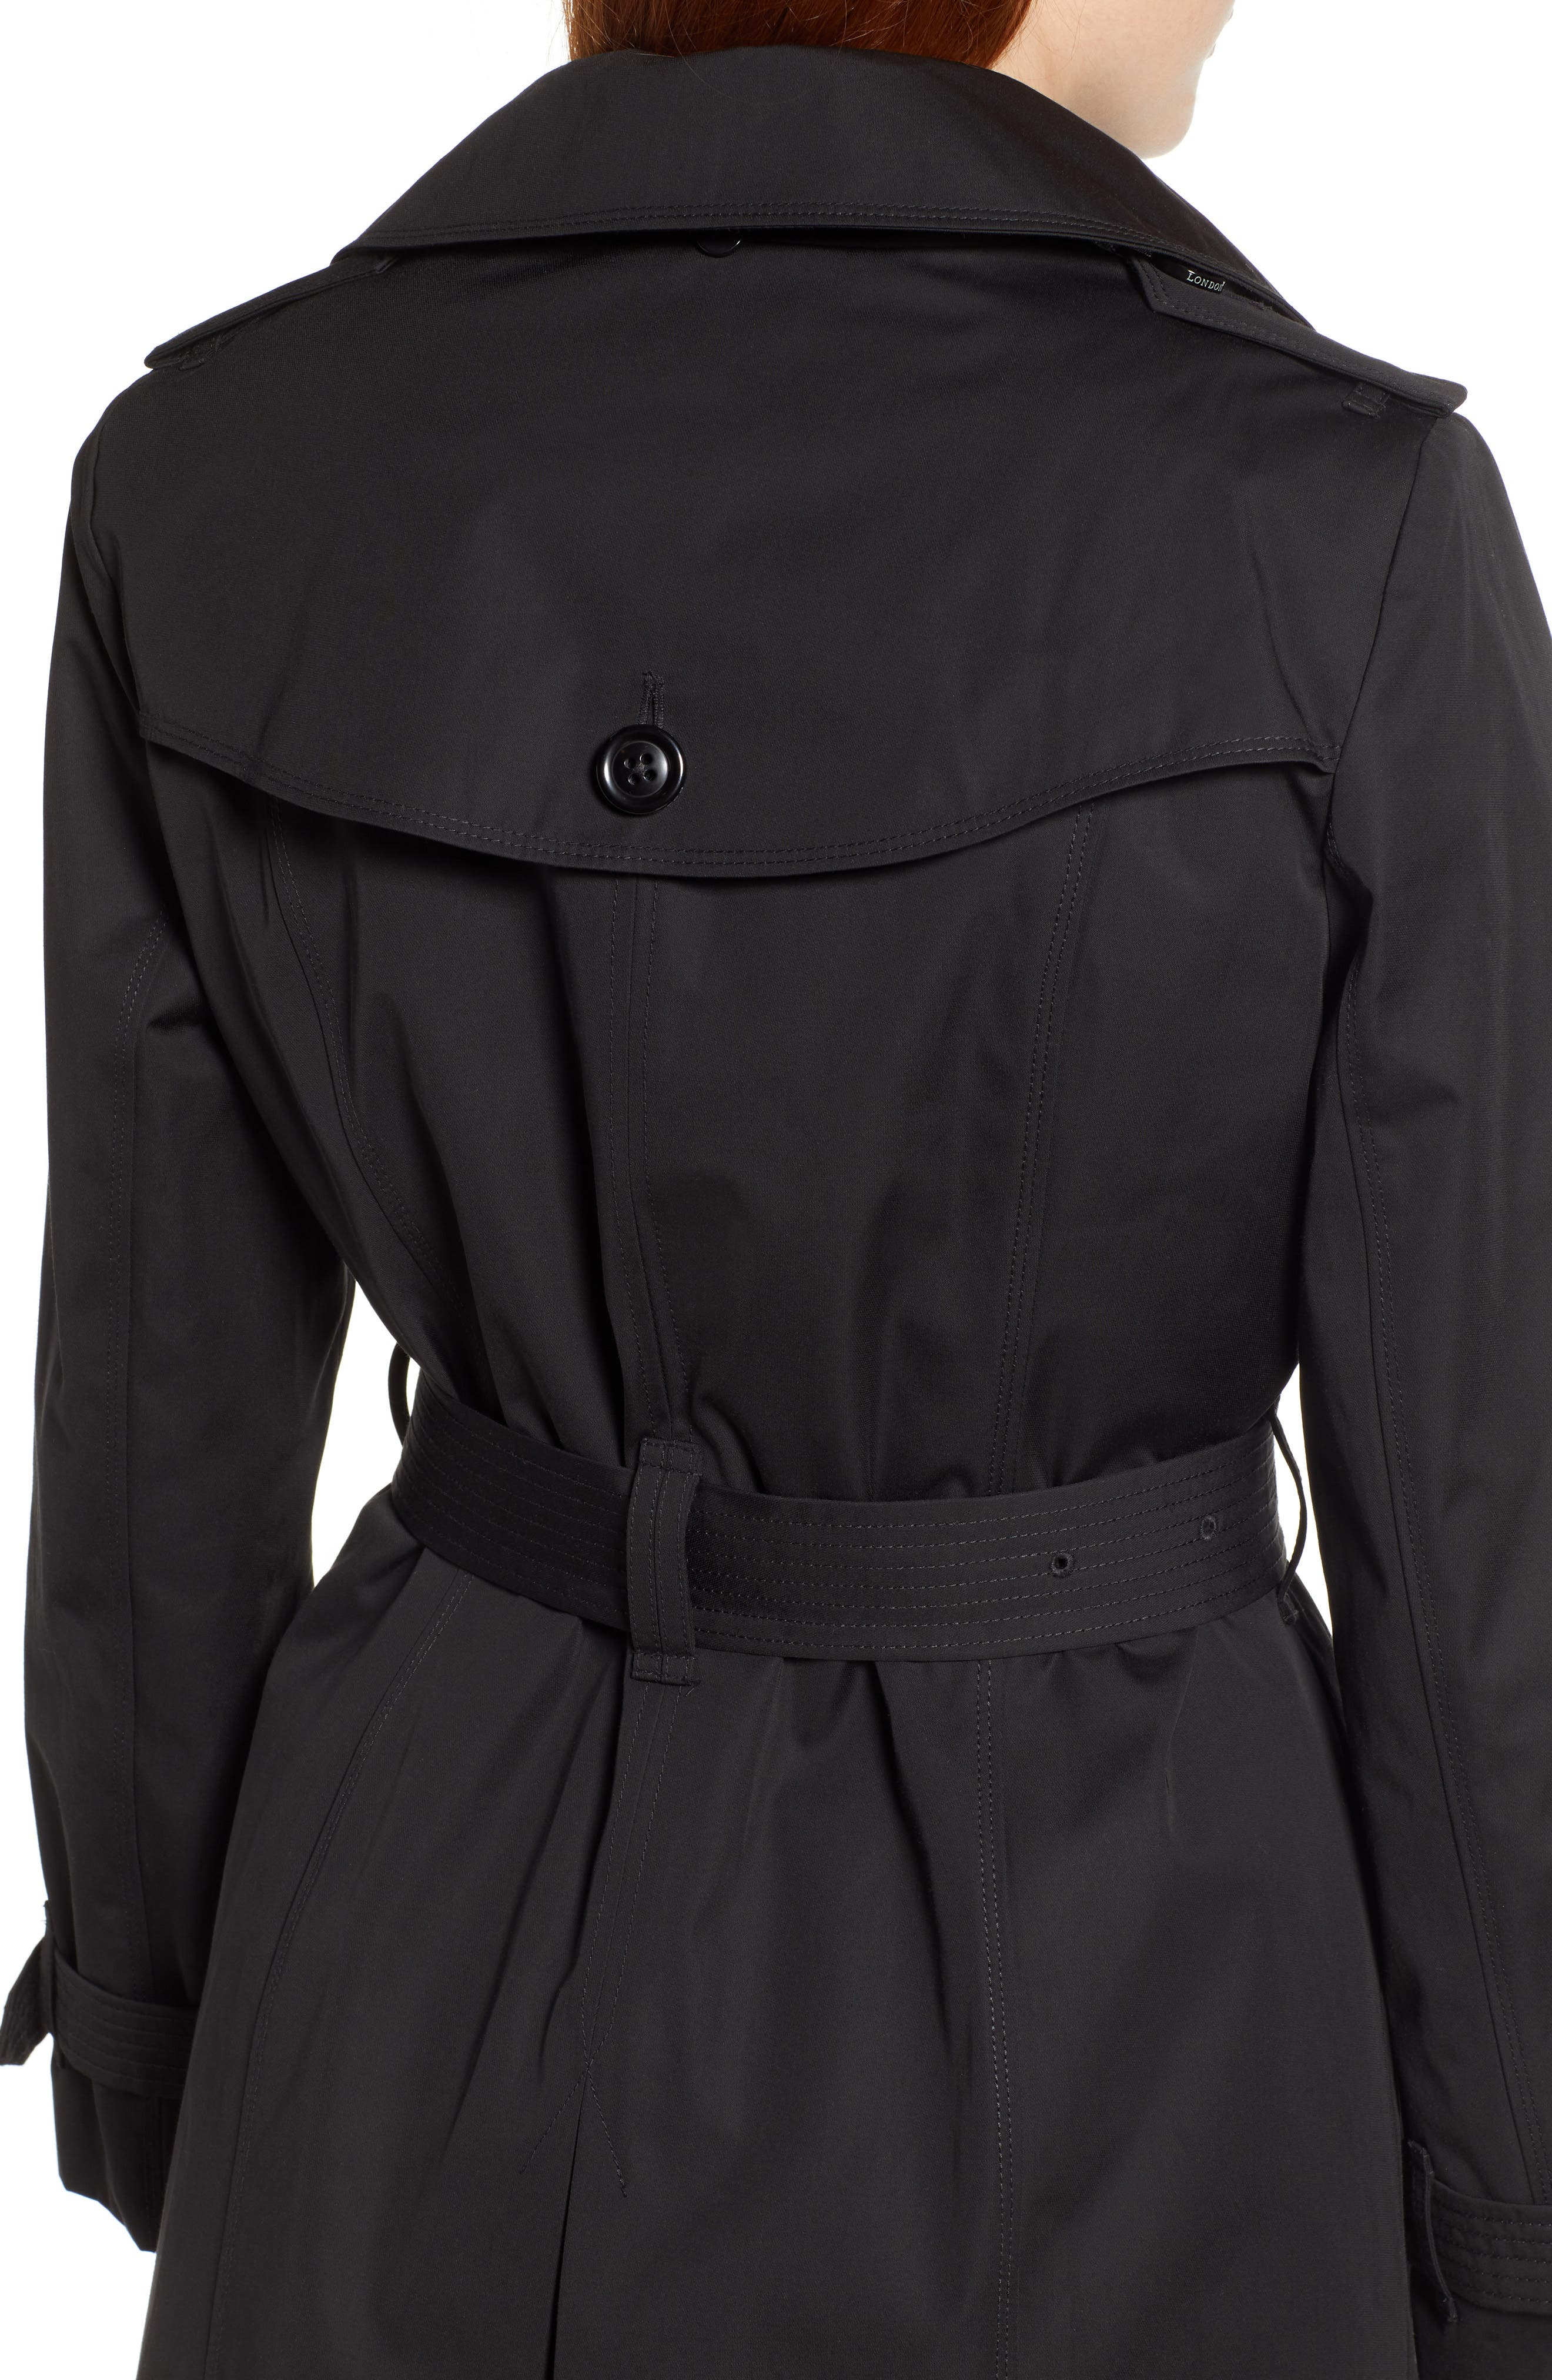 LONDON FOG, Trench Coat with Detachable Liner & Hood, Alternate thumbnail 5, color, BLACK